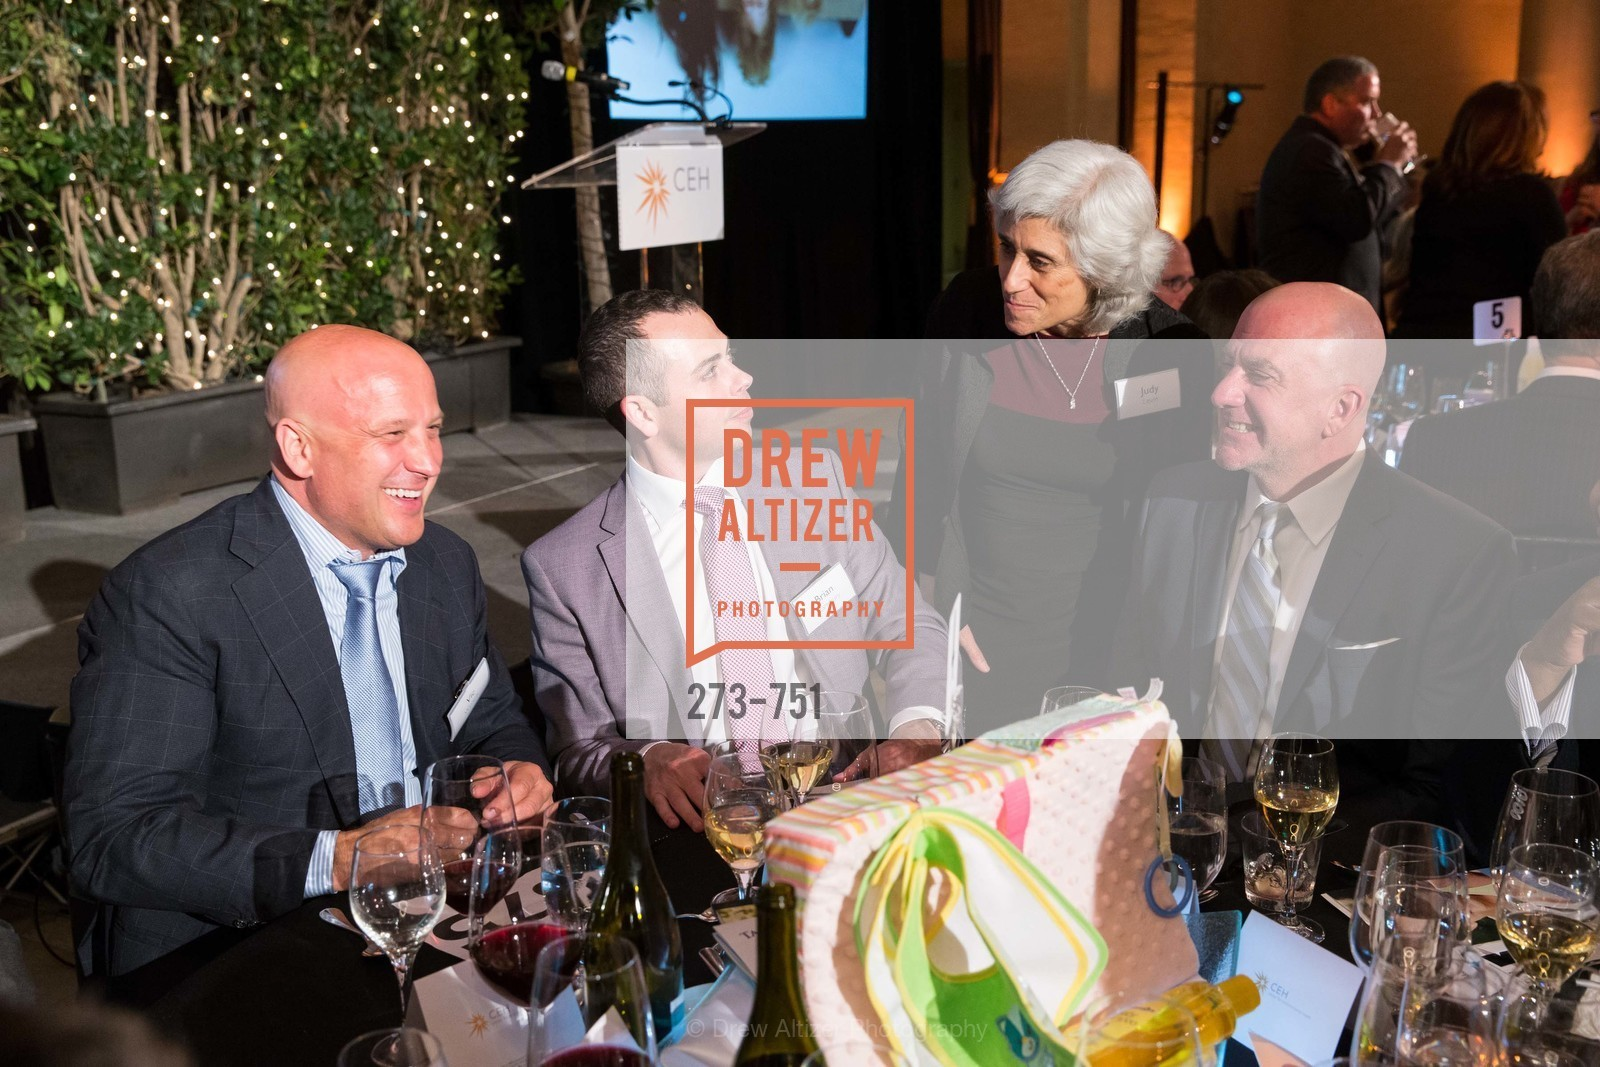 Vic Wyrsch, Brian Stansbury, Judy Levin, CENTER FOR ENVIRONMENTAL HEALTH (CEH) 2015 Gala, Bently Reserve, May 28th, 2015,Drew Altizer, Drew Altizer Photography, full-service agency, private events, San Francisco photographer, photographer california